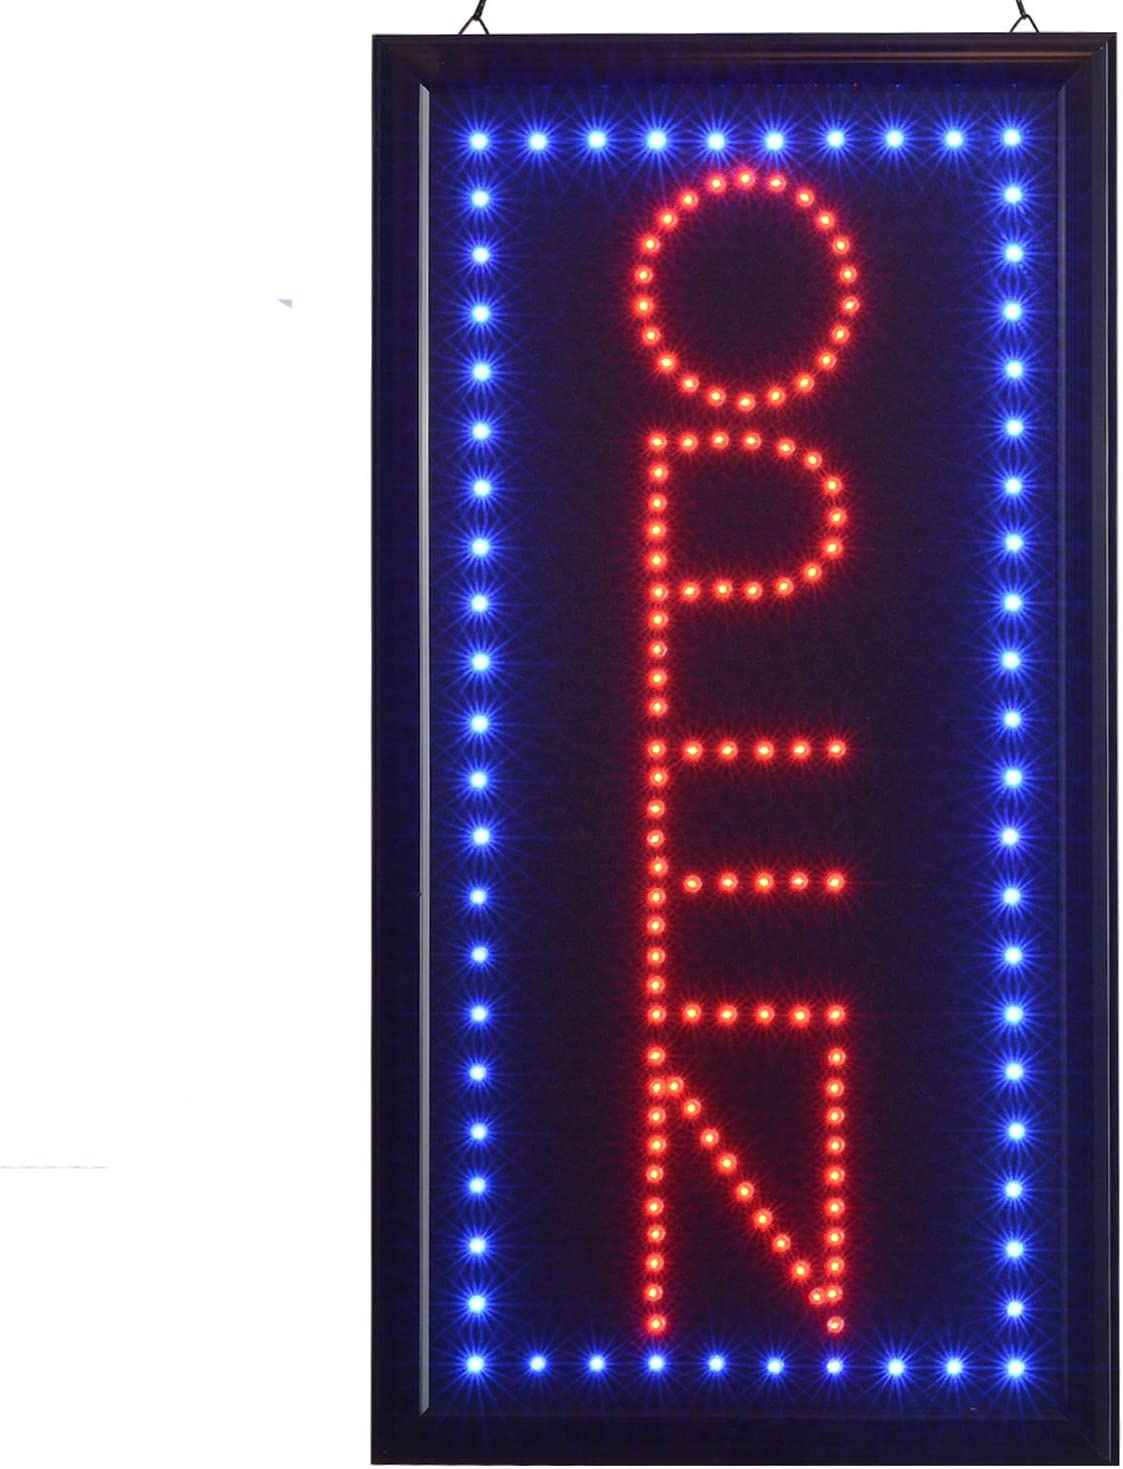 LED ATM Sign for Business Displays 27H x 11W x 1D Vertical Electronic Light Up Sign for Restaurants Convenience Stores